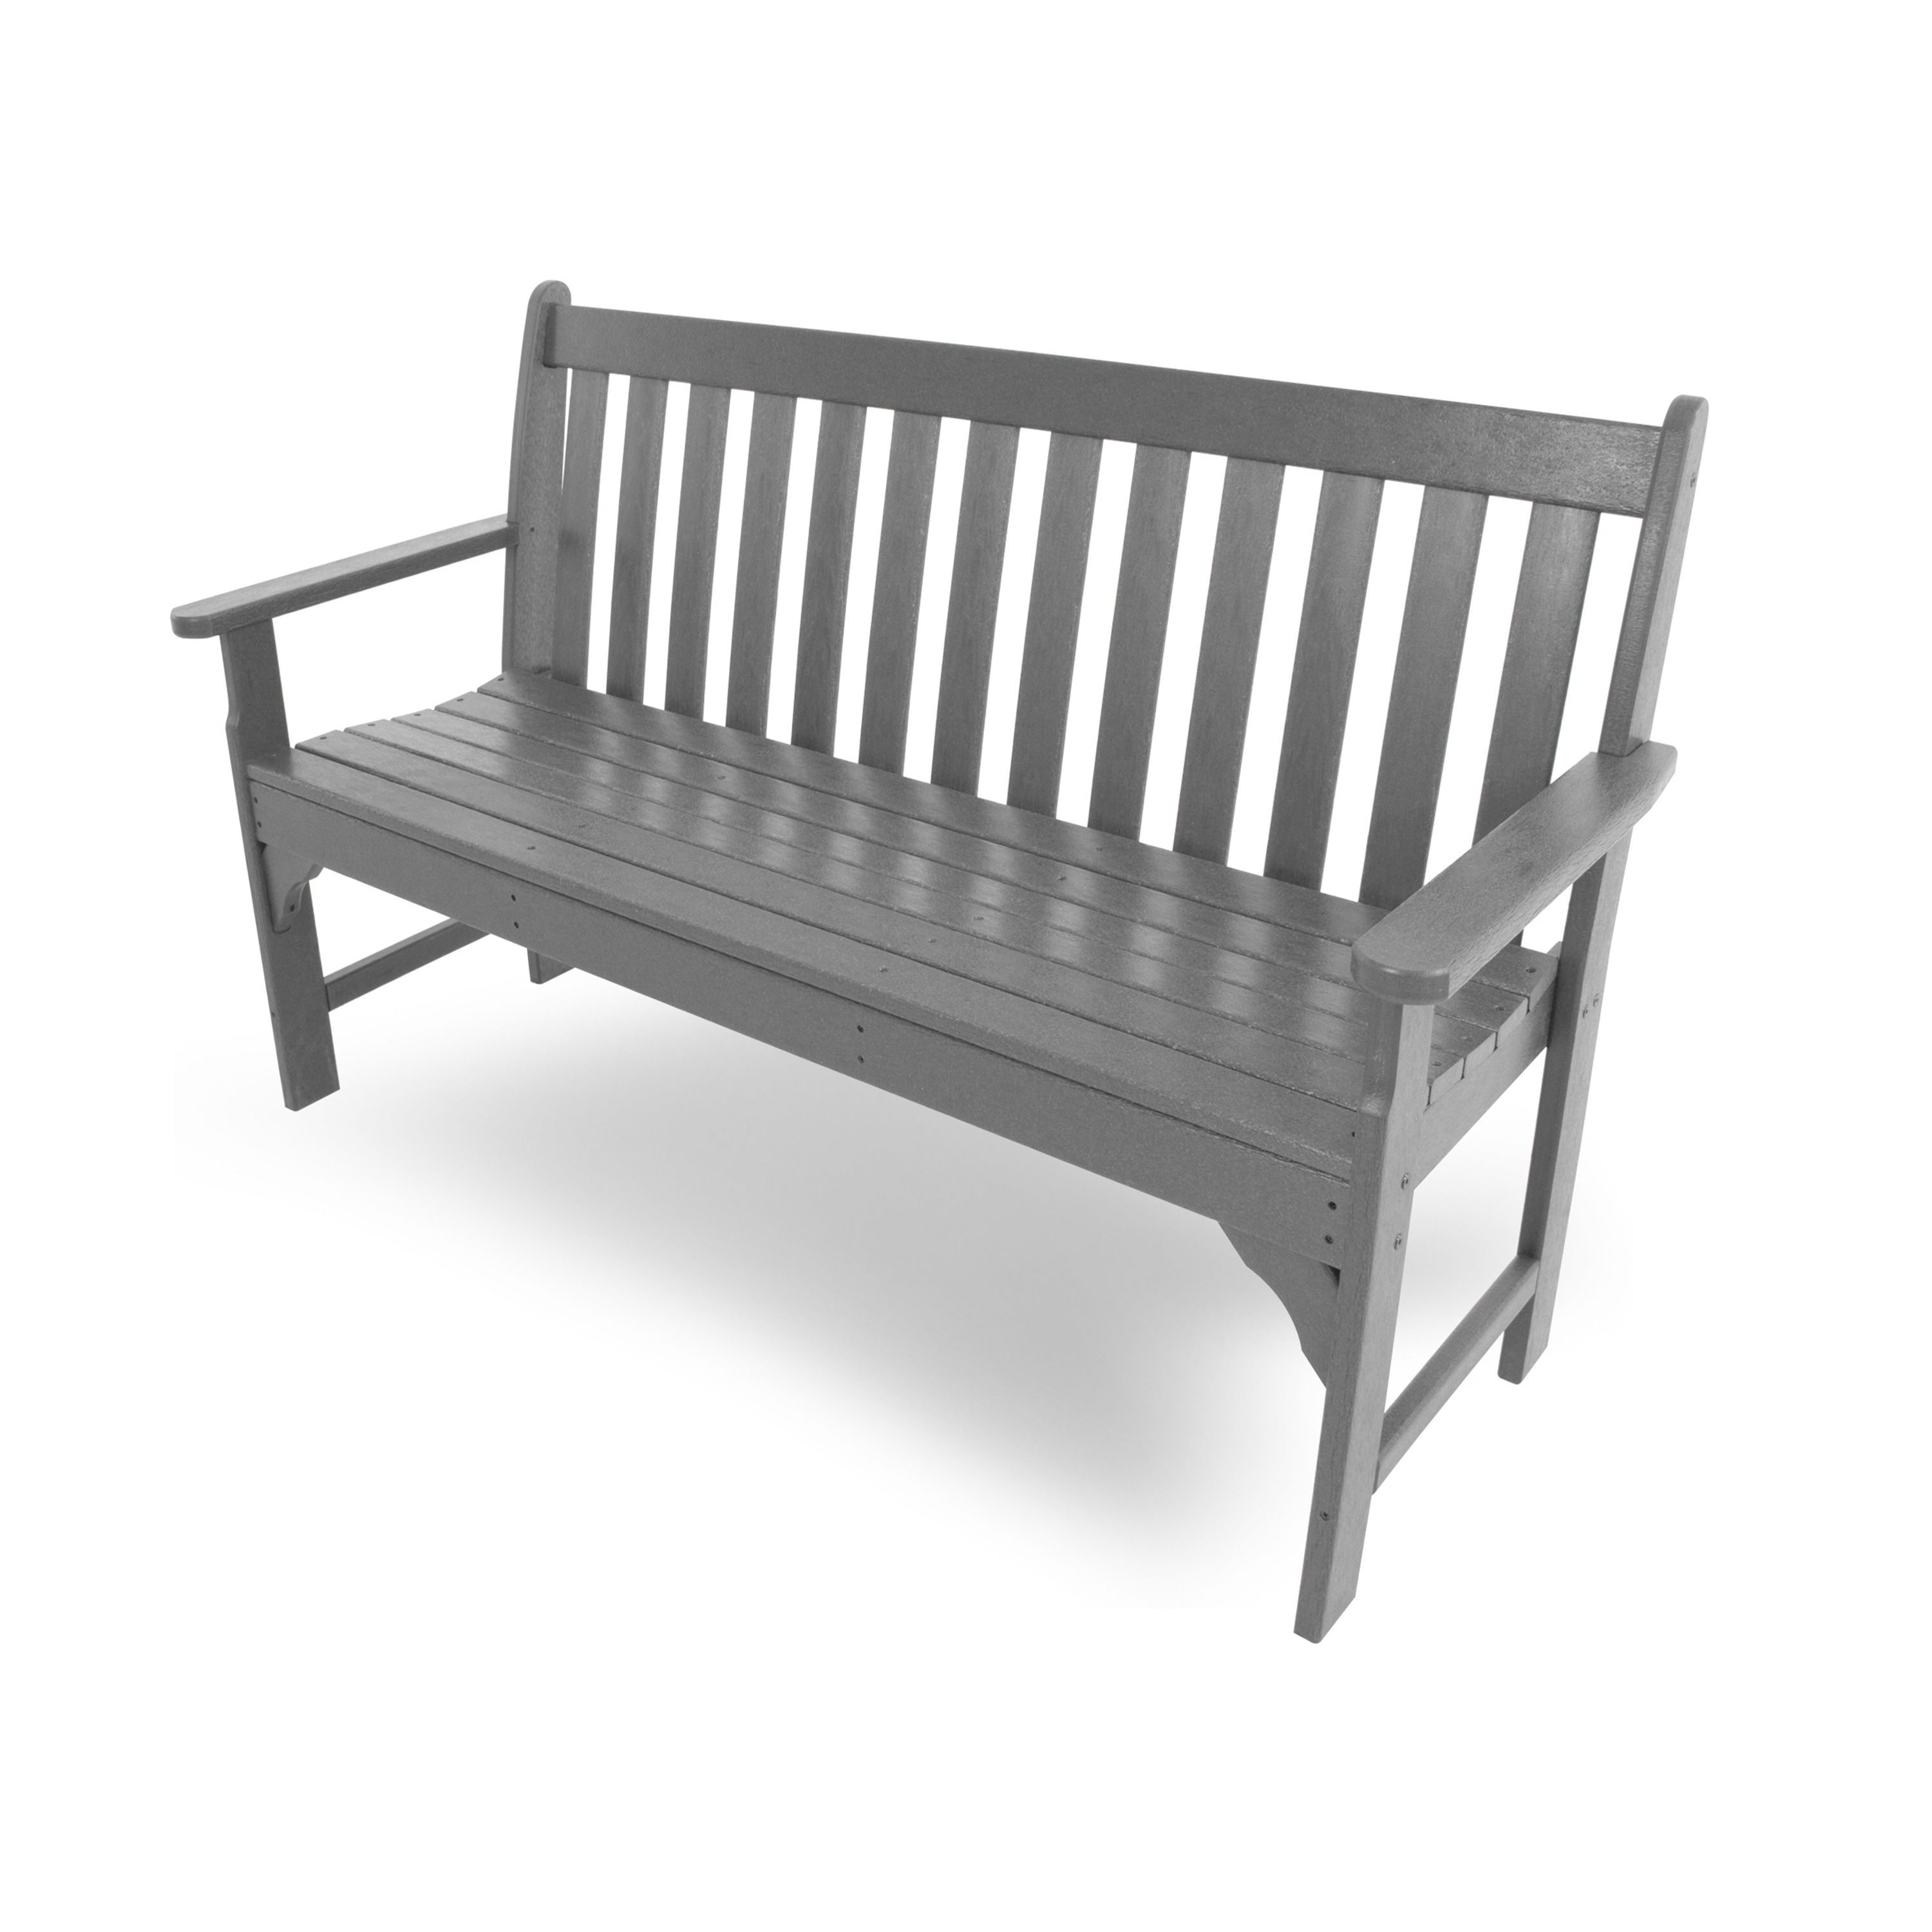 Admirable Polywood Vineyard 60 Inch Outdoor Bench Mahogany Brown Bralicious Painted Fabric Chair Ideas Braliciousco